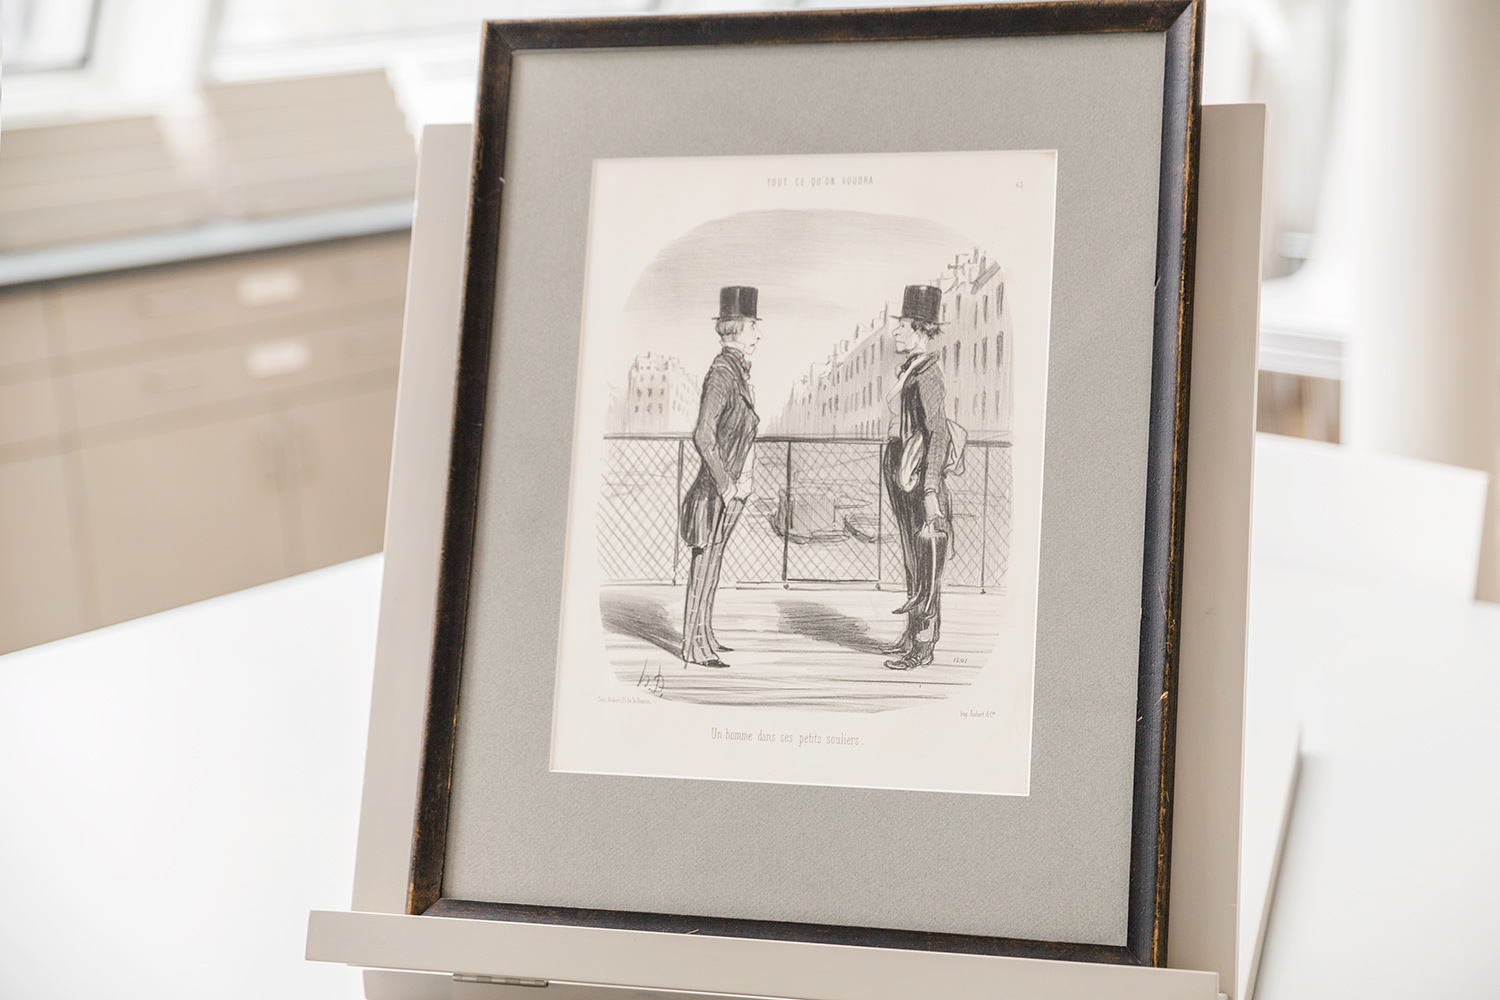 "Honoré-Victorin Daumier's 1849 lithograph ""Un Homme dans ses petits souliers"" is among the works in the Student Print Rental Collection."